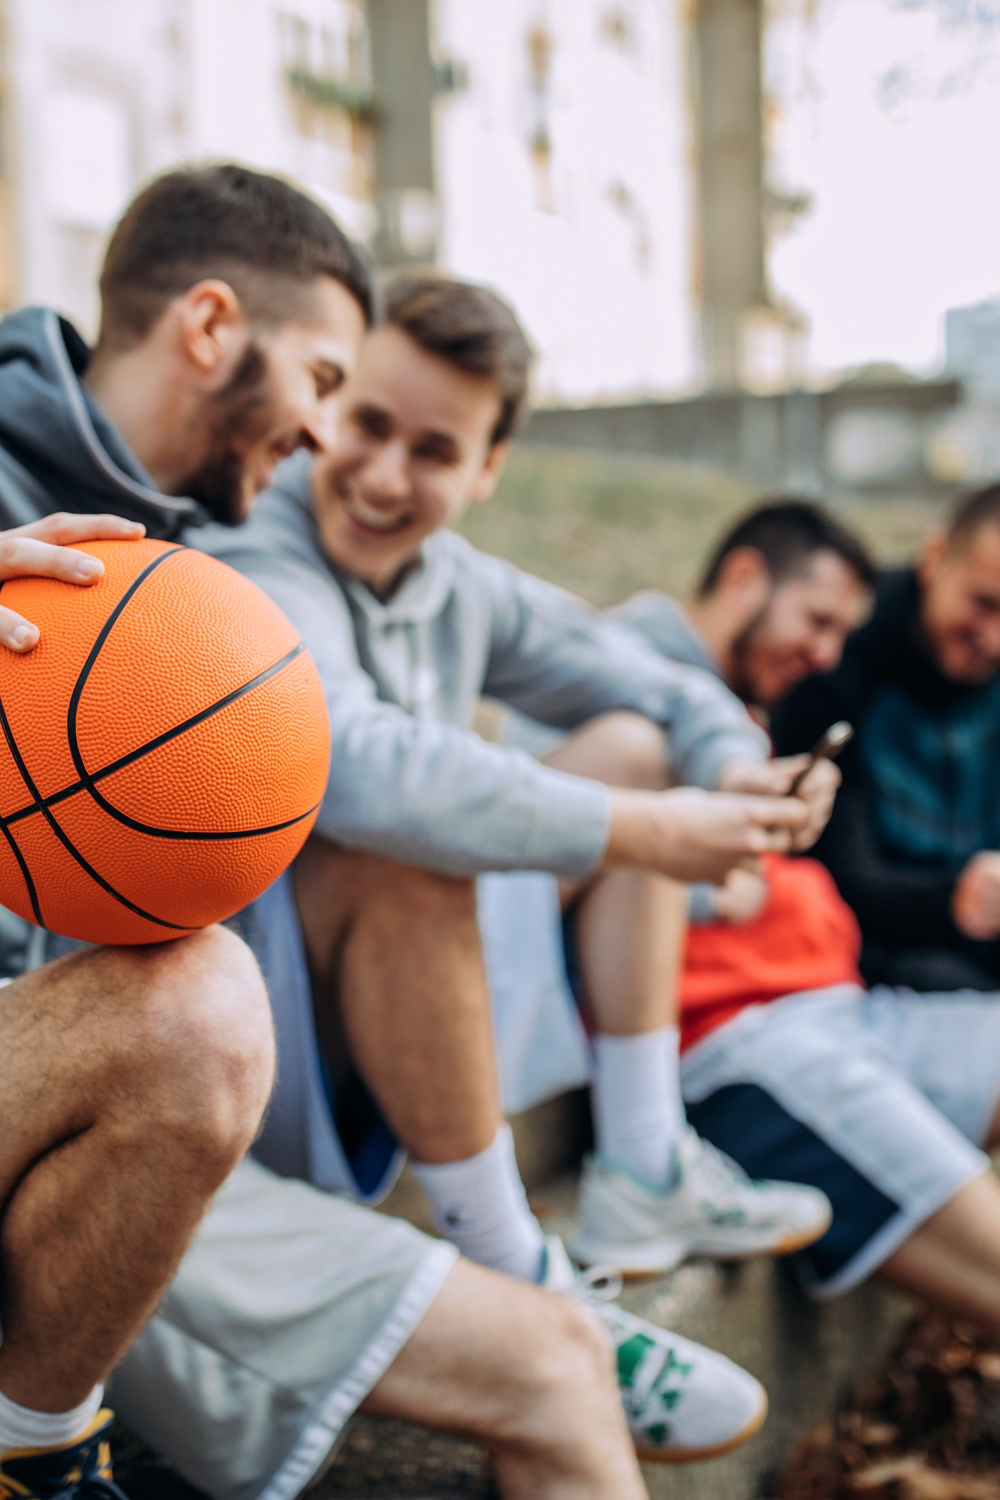 5 Group Activities While Staying Active